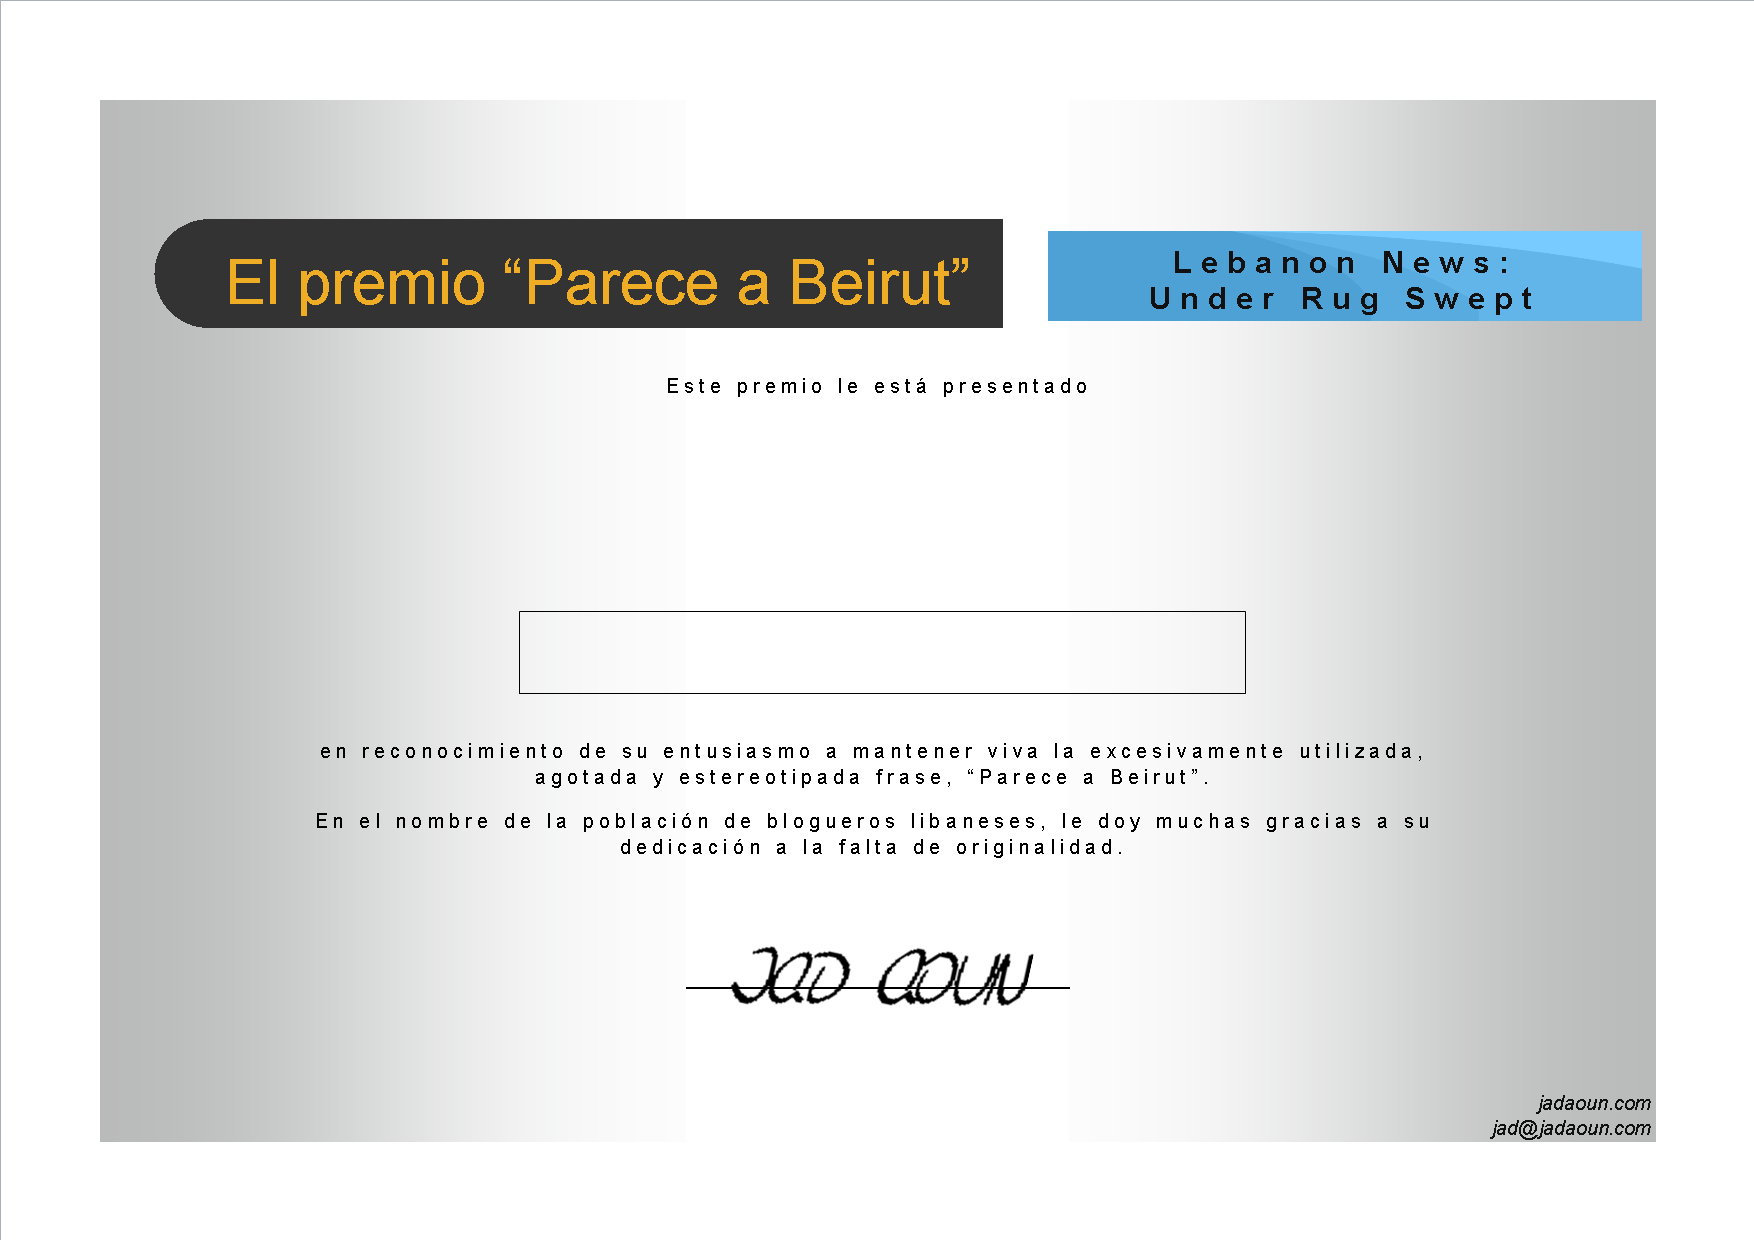 Looks like beirut certificate now in spanish jad aoun looks like beirut certificate in spanish 1betcityfo Gallery